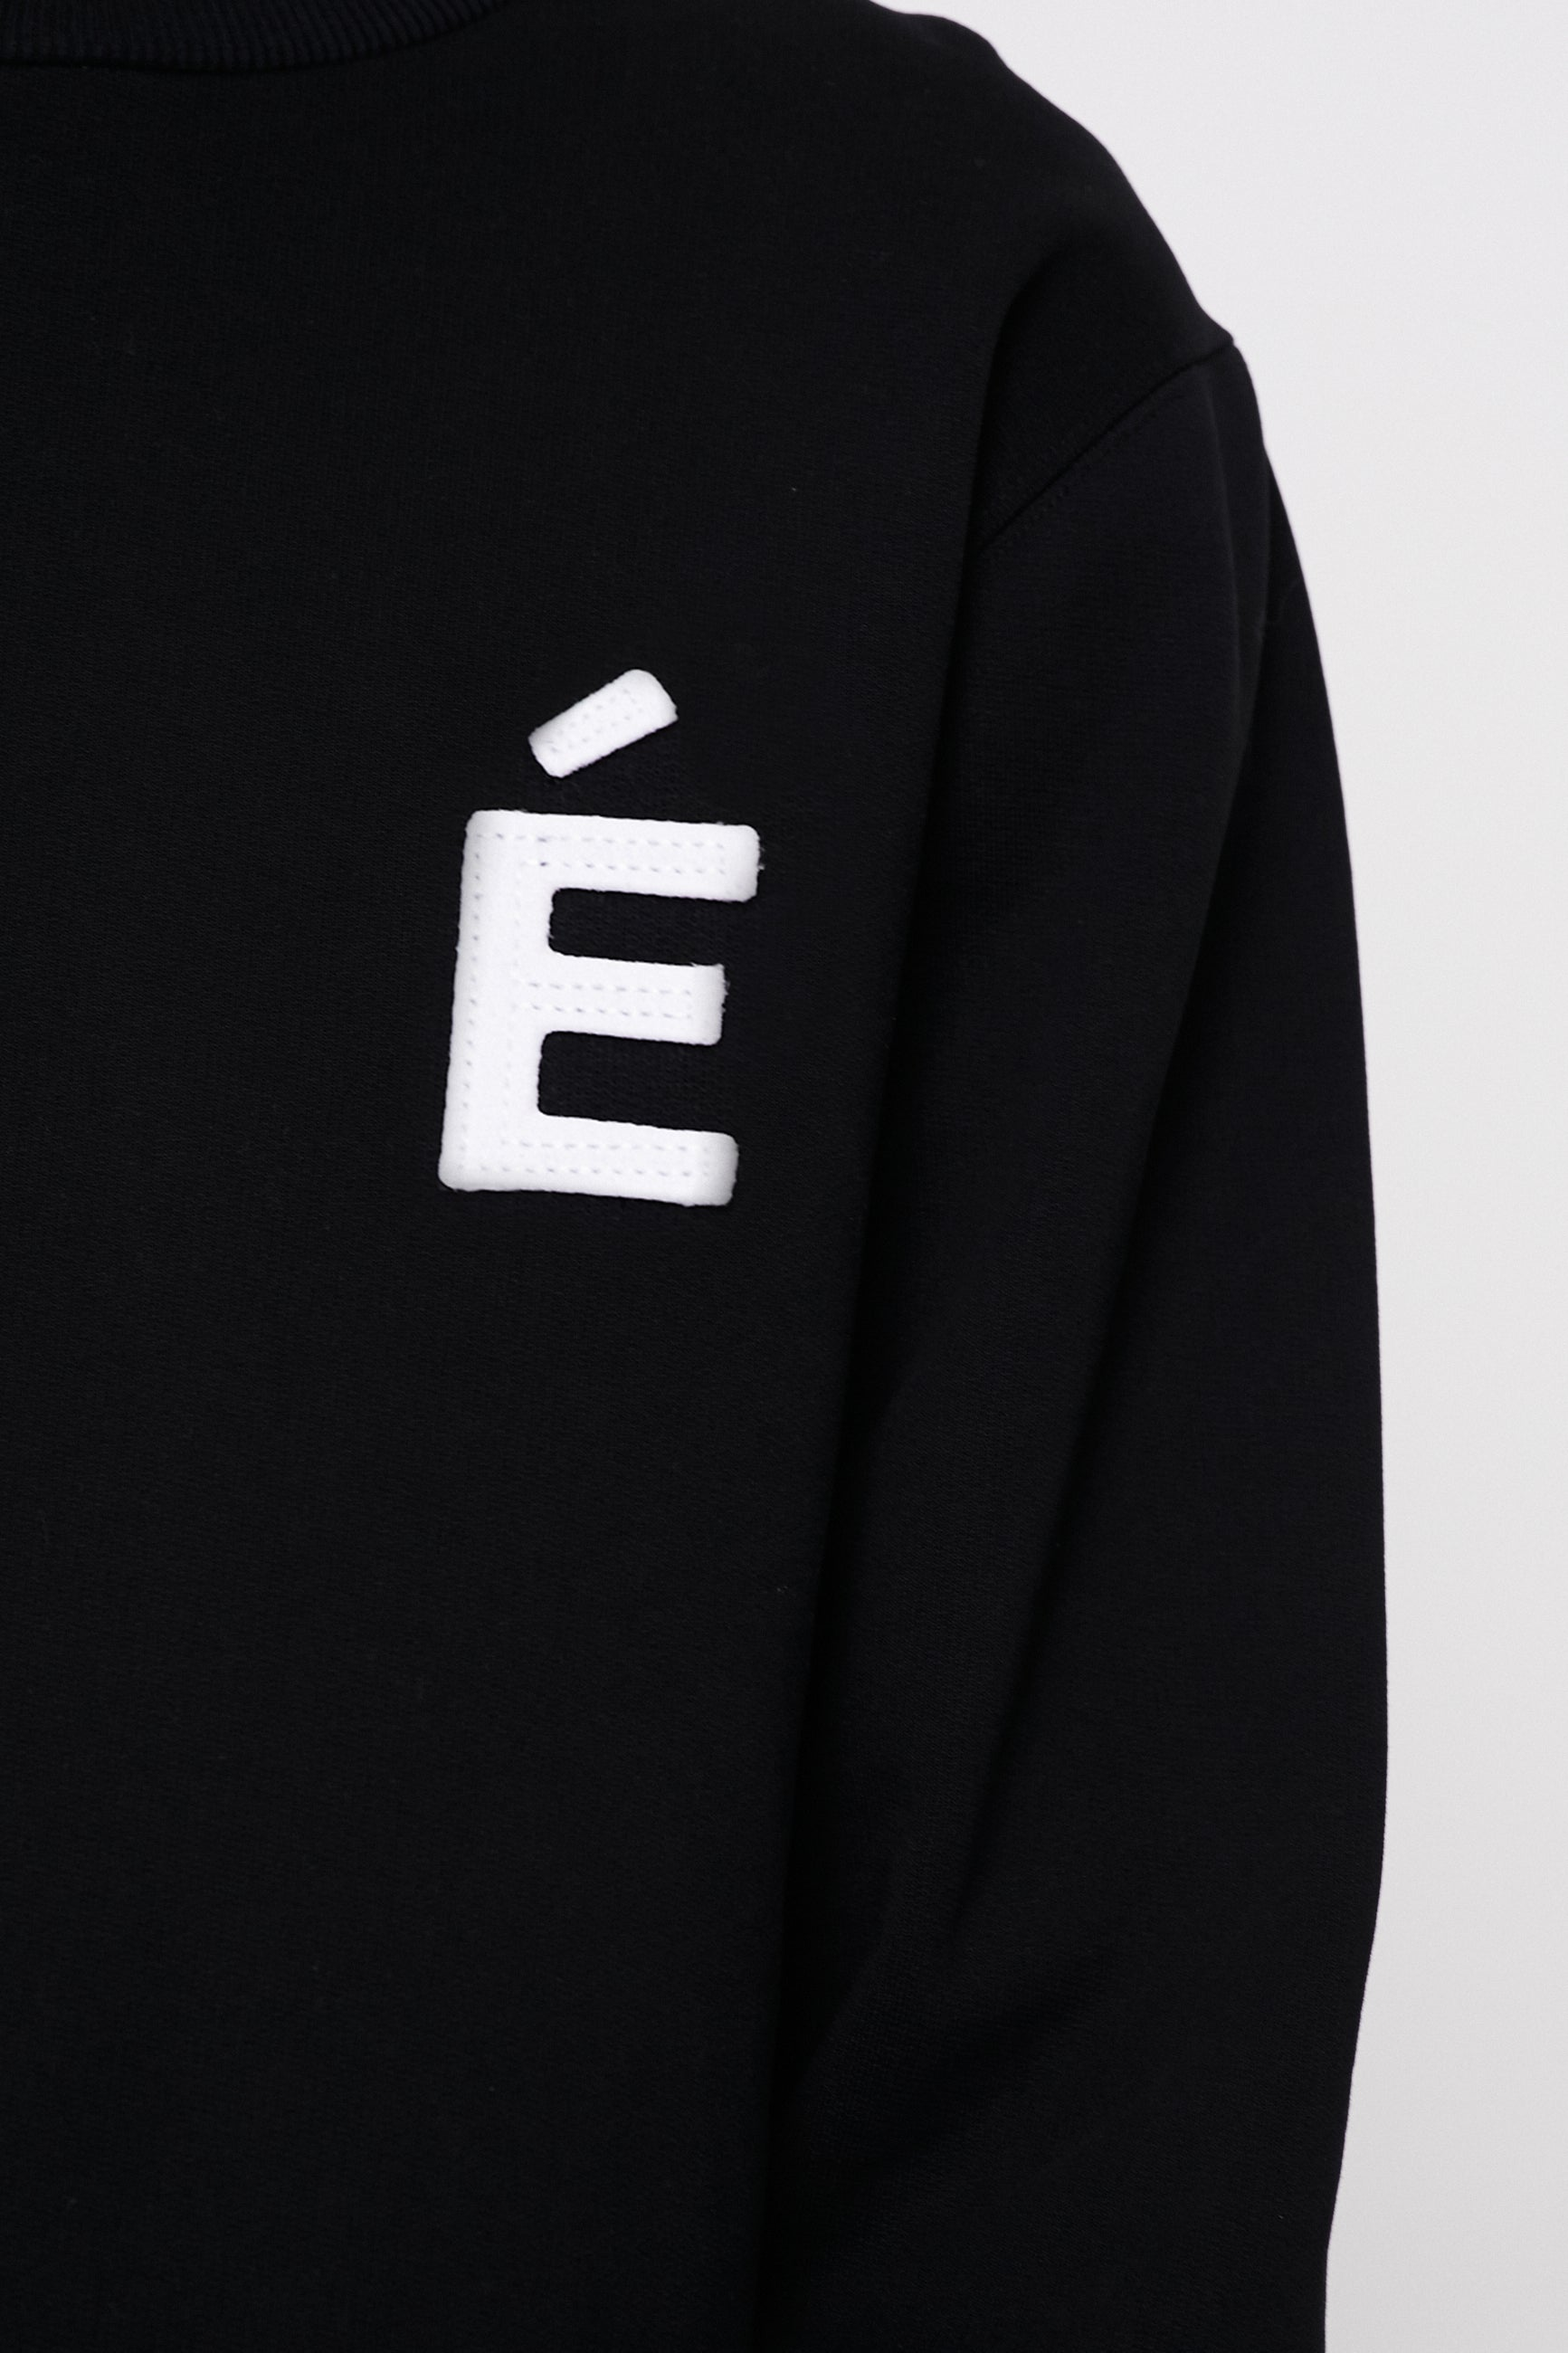 Études Story Patch Black Sweatshirt 2